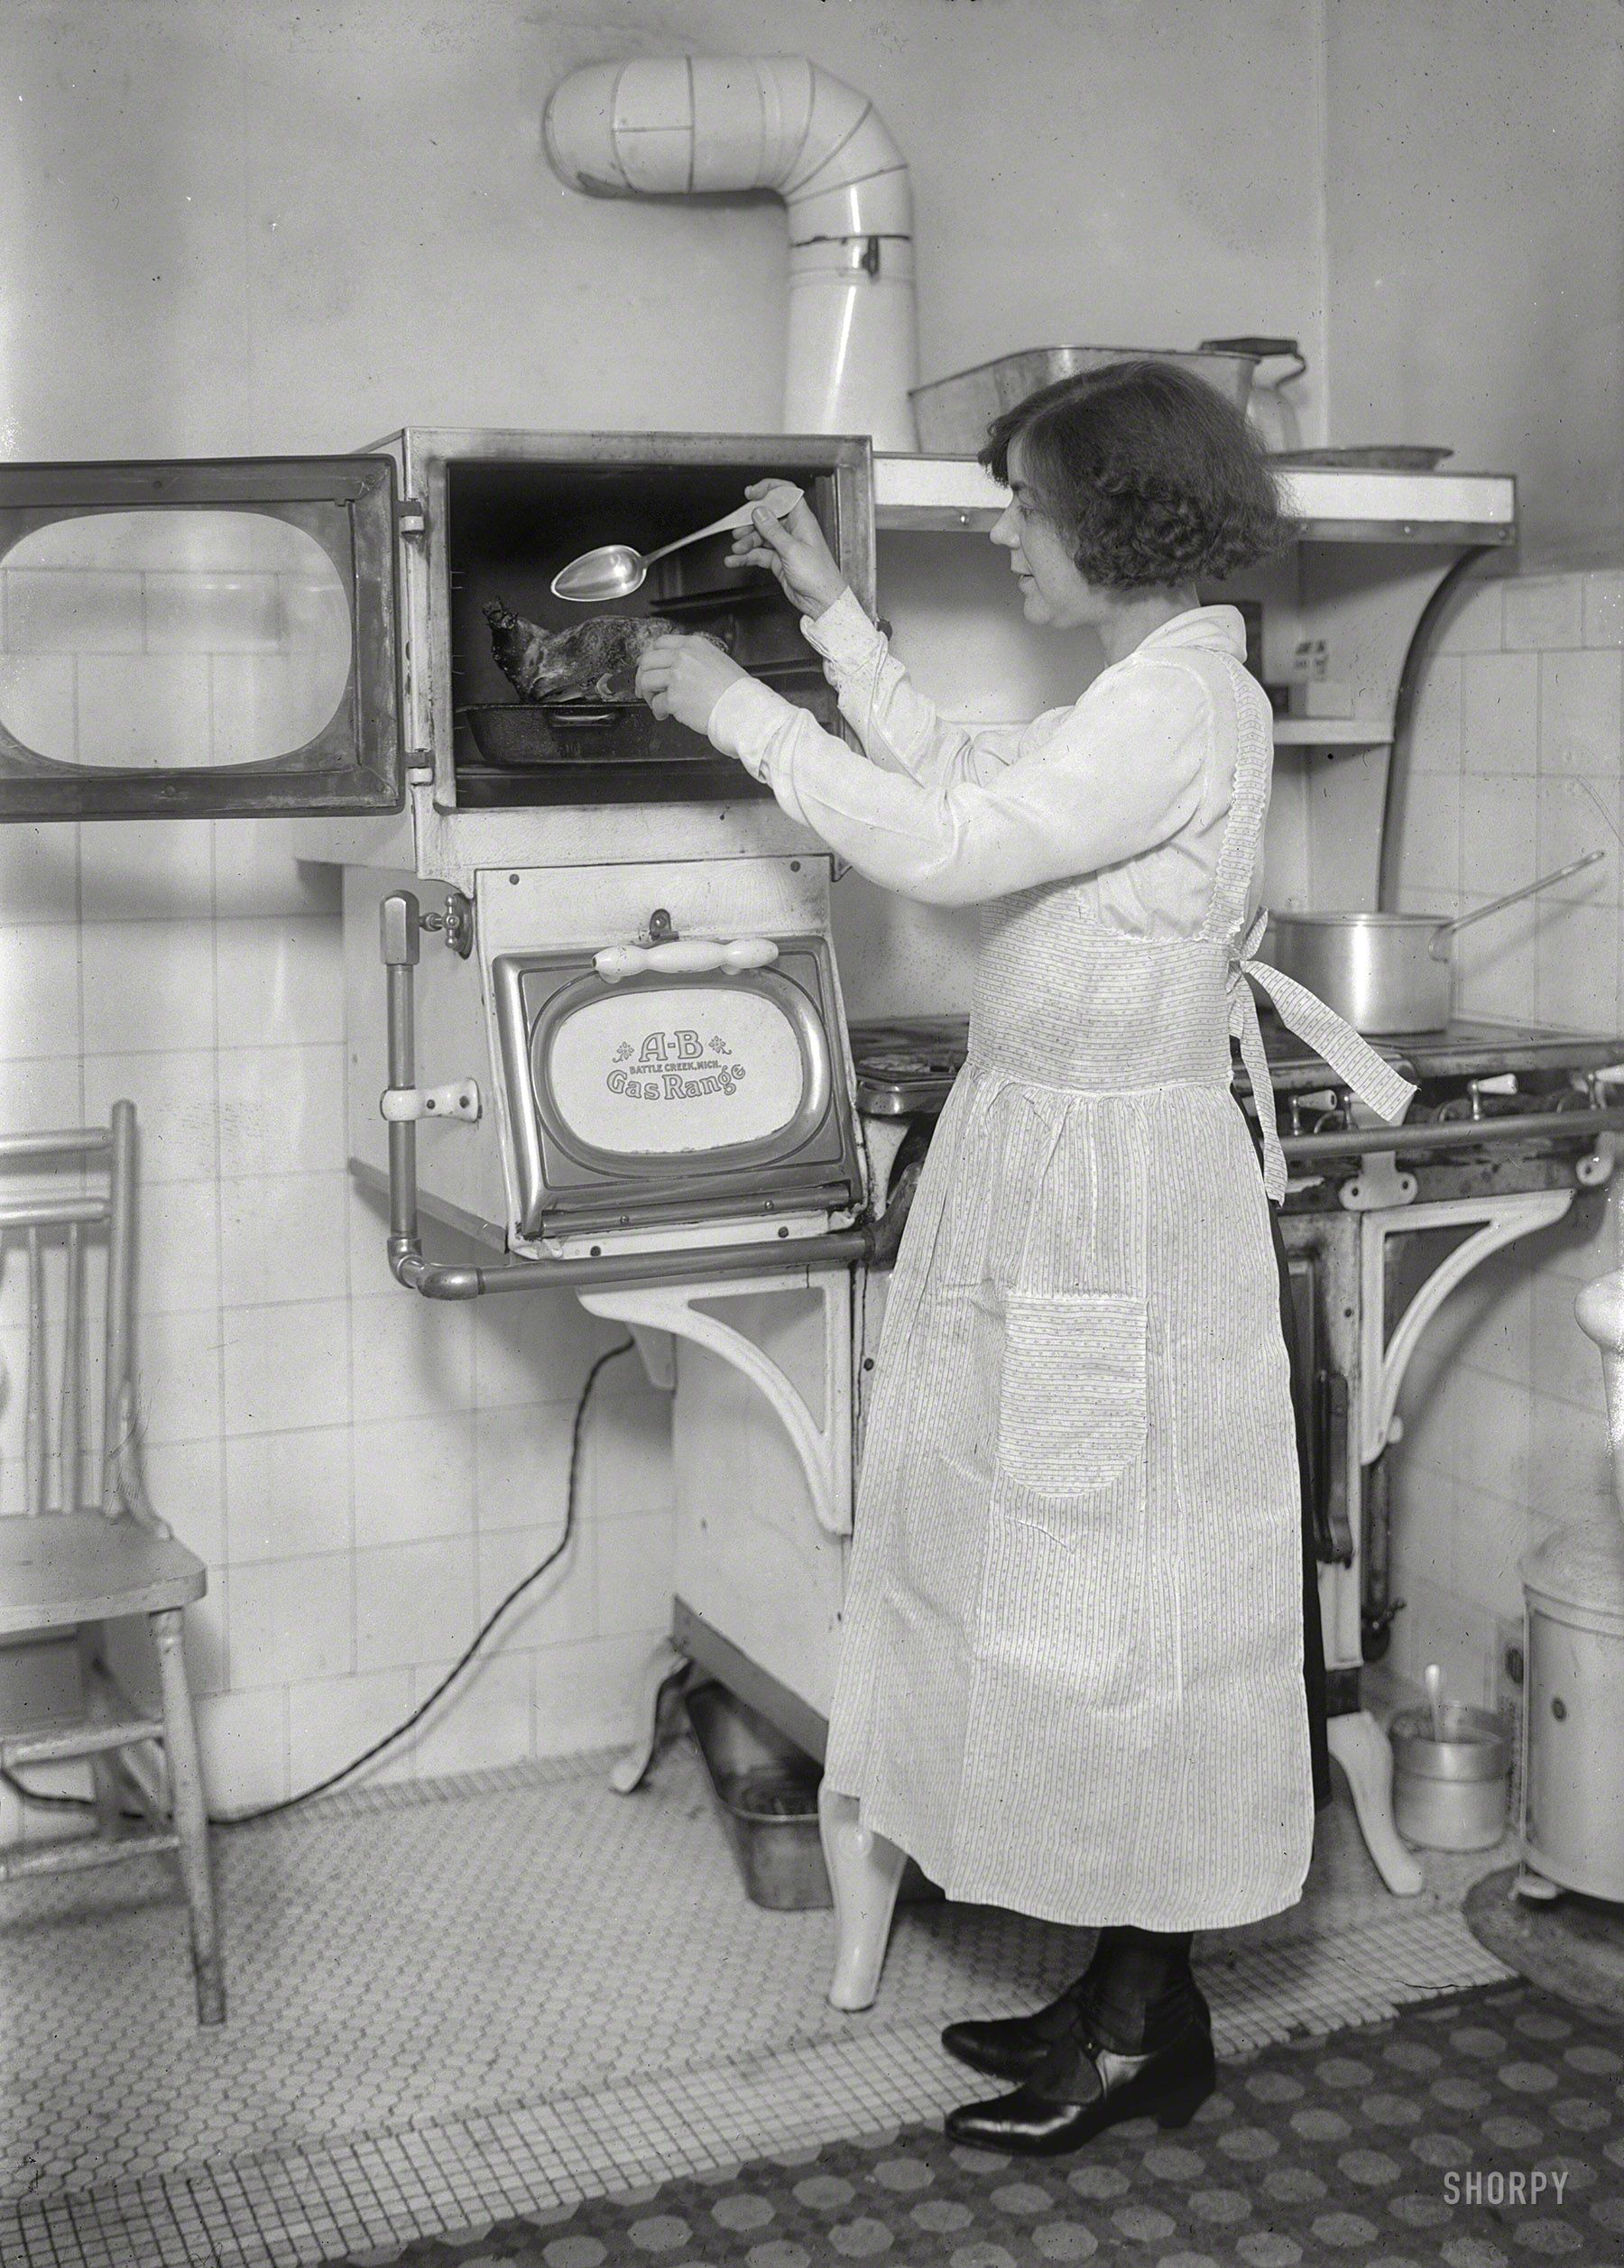 British pianist and conductor Ethel Leginska bastes her bird in a double gas oven. Circa 1921 in New York